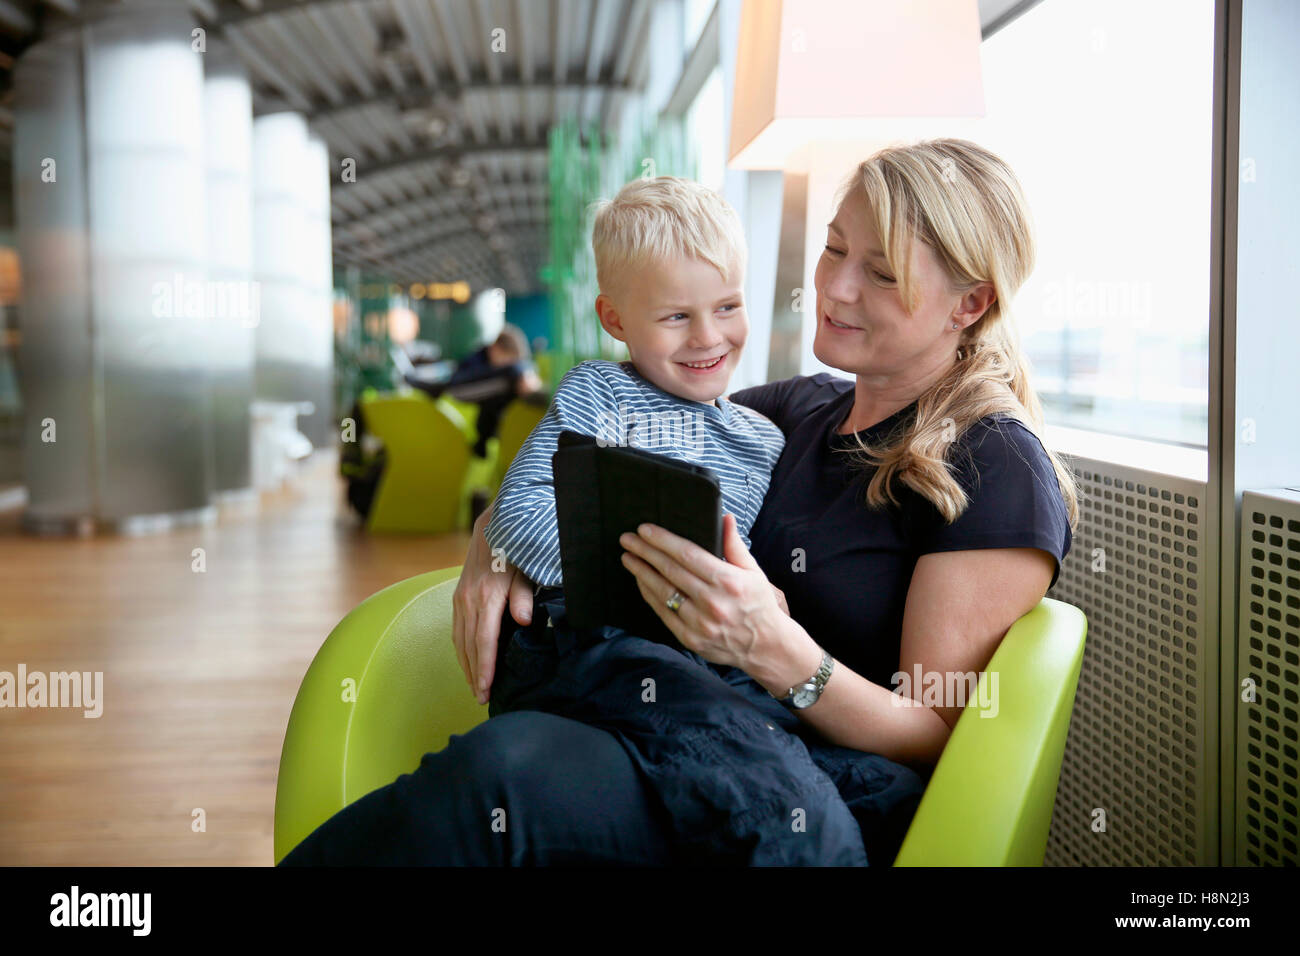 Mature woman sitting at airport hall and using tablet with boy (6-7) sitting on her lap - Stock Image